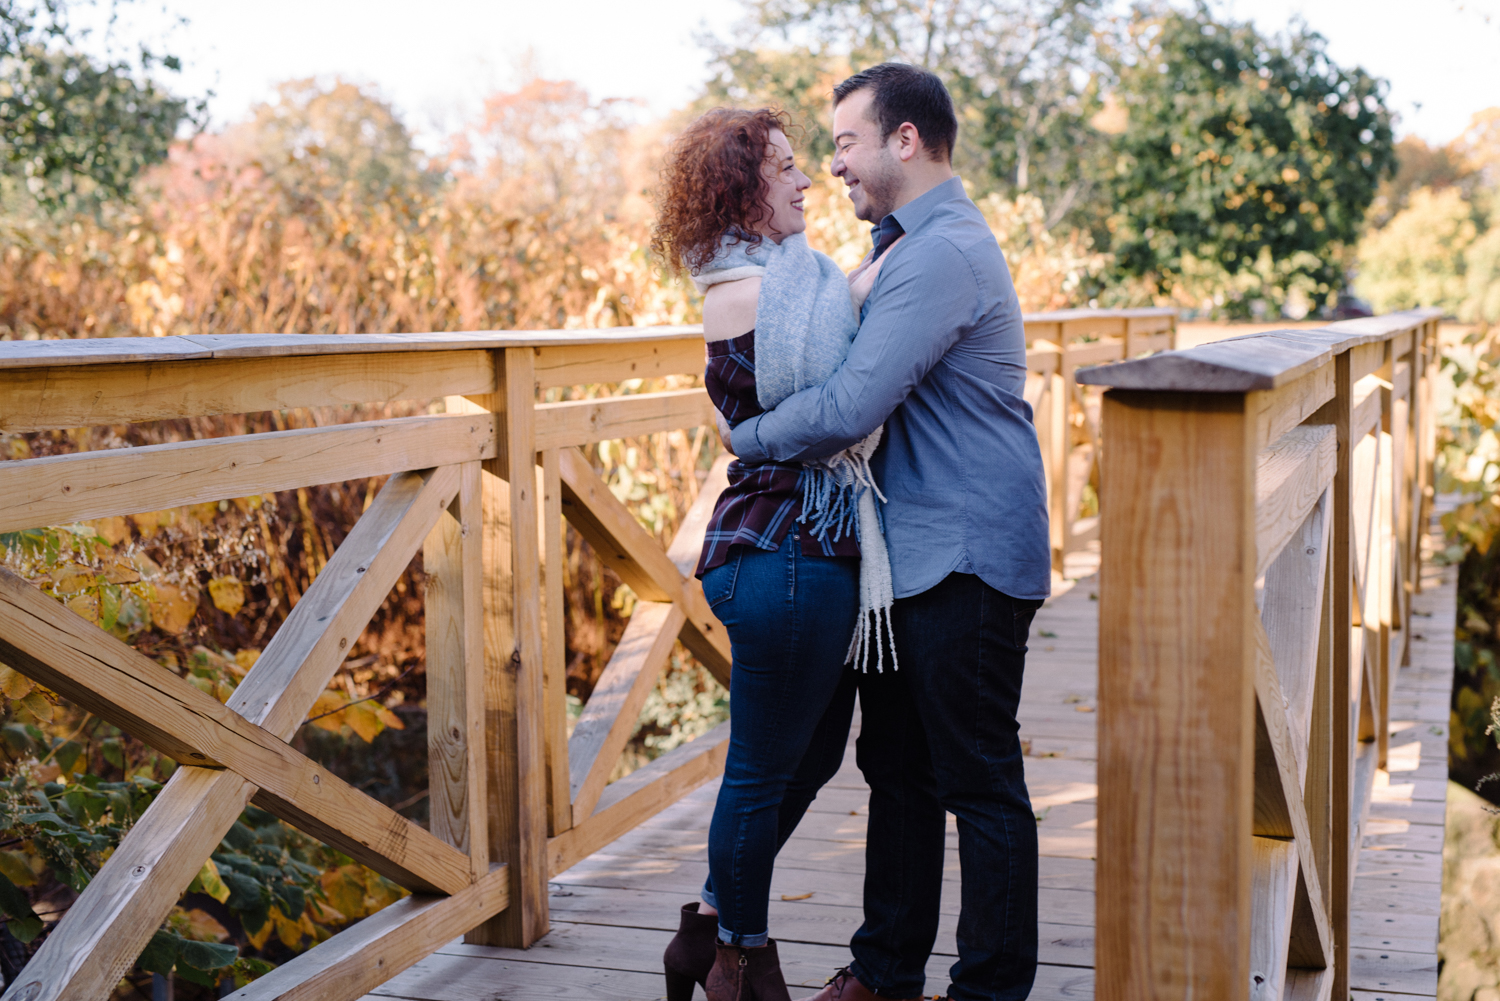 Melissa+Kenny- Watsessing Park Fall Engagement Session- Bloomfield New Jersey- Olivia Christina Photo-21.JPG